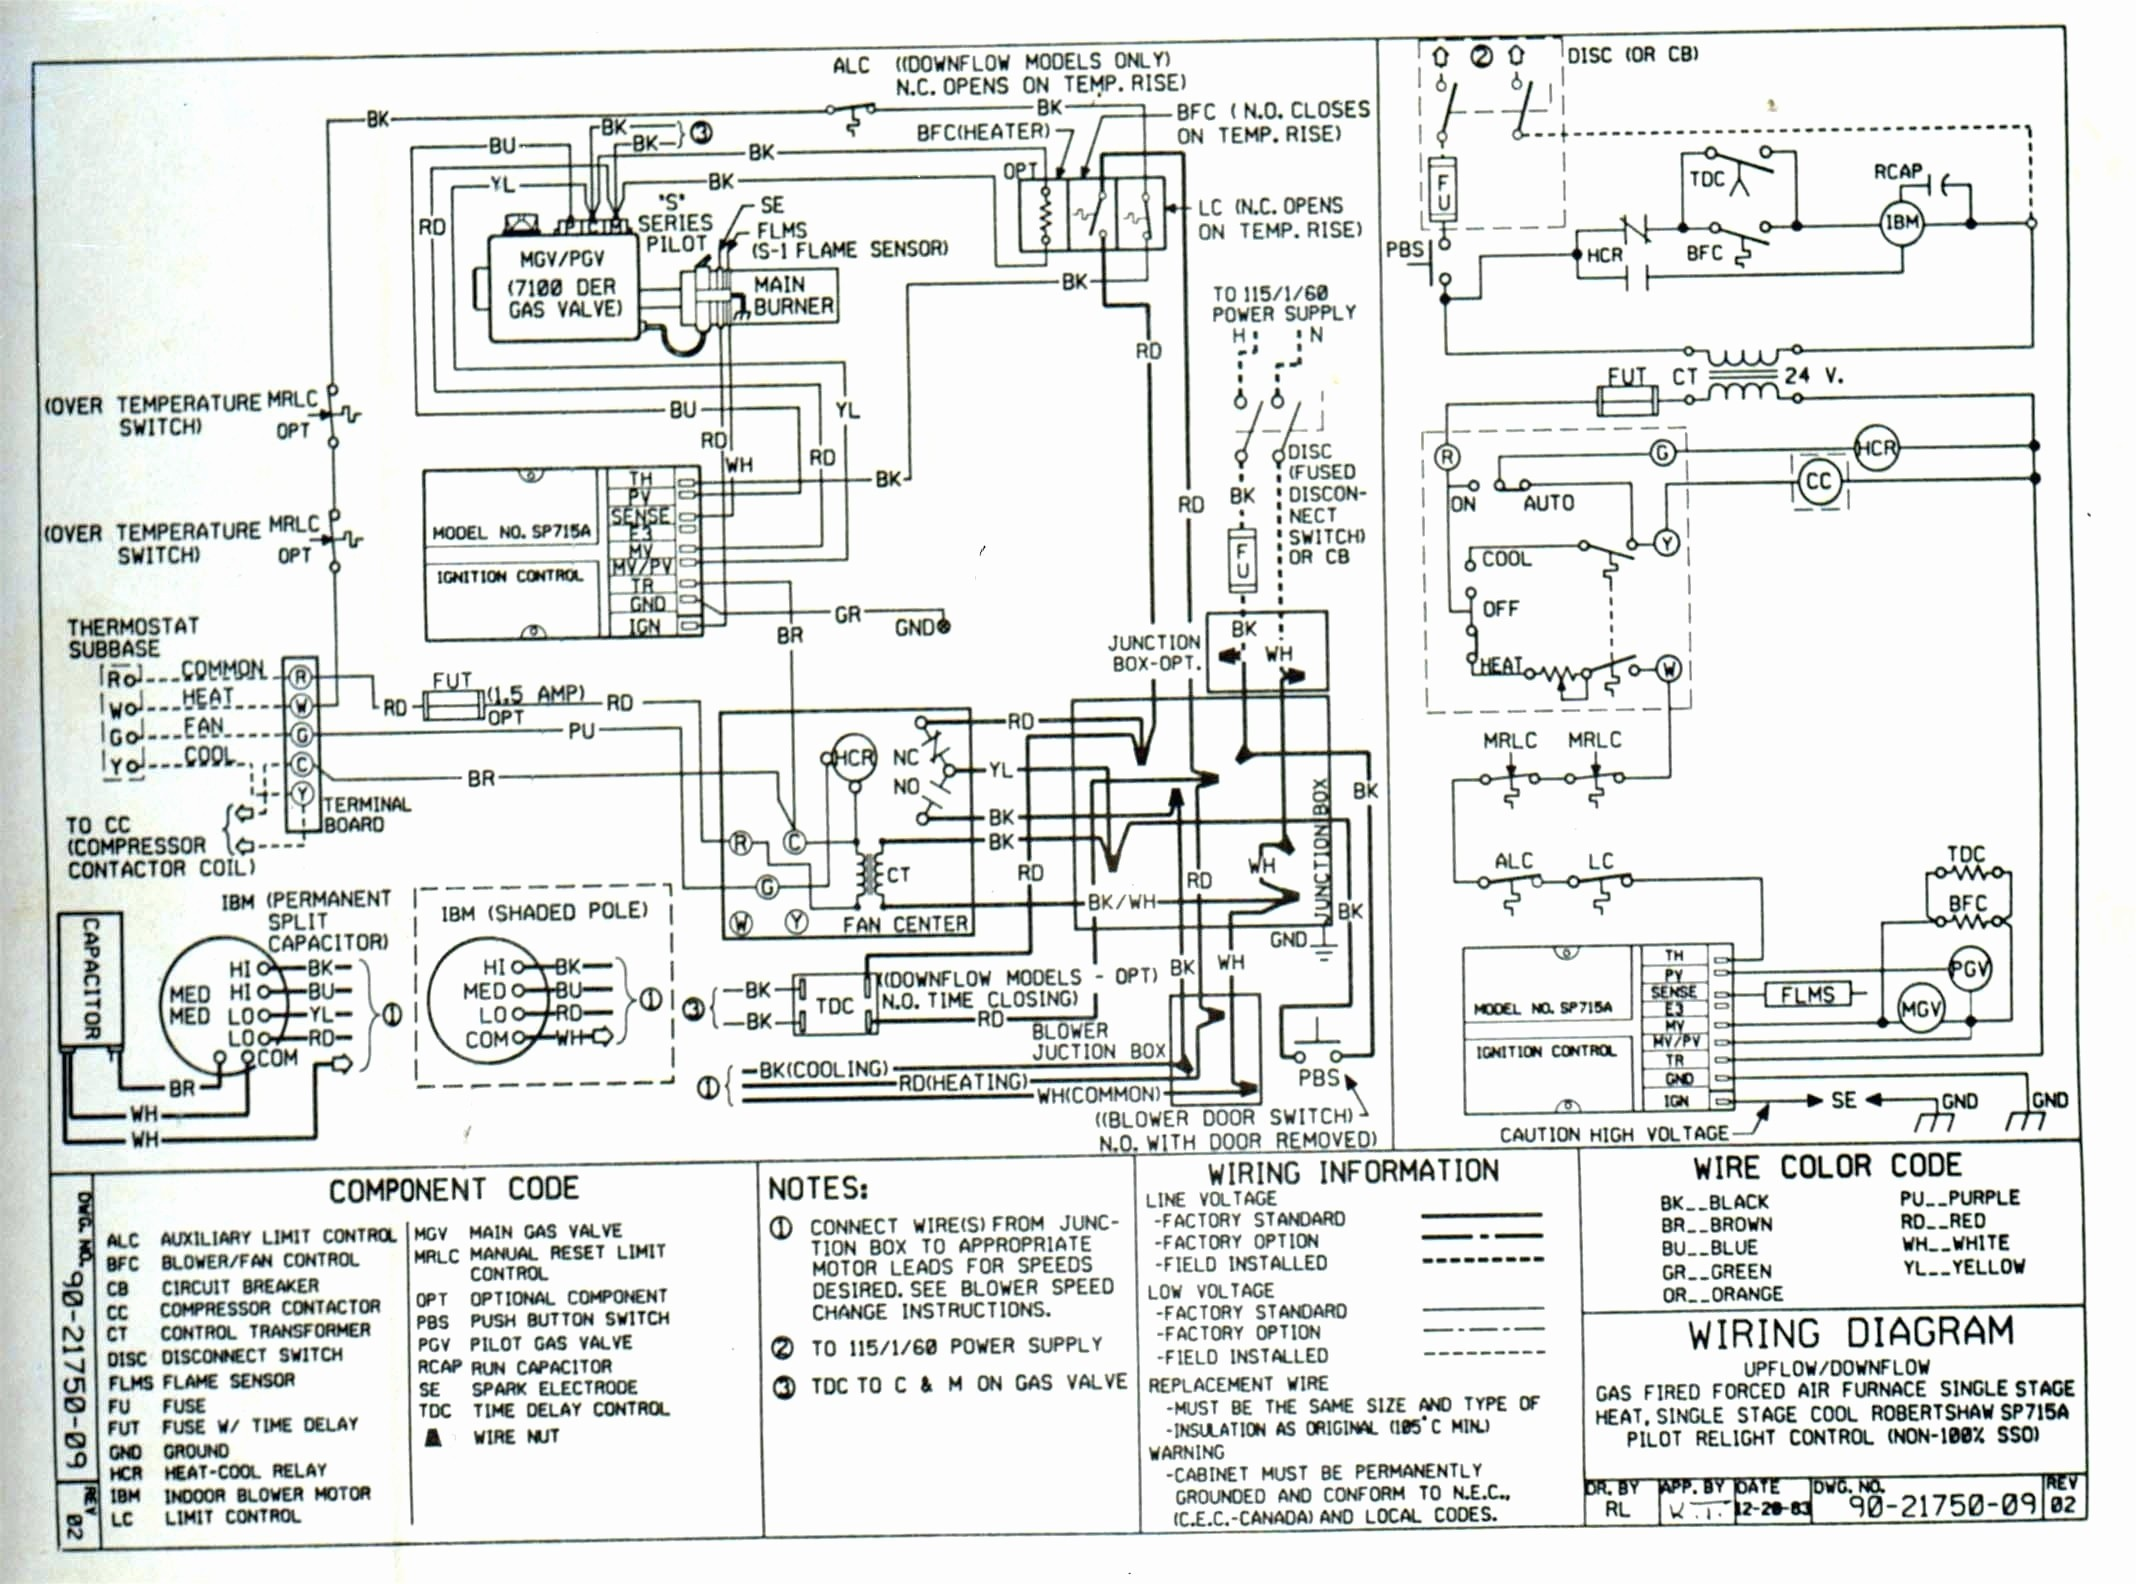 Amp Research Power Step Wiring Diagram C9b Robbins Amp Myers Electric Motor Wiring Diagram Of Amp Research Power Step Wiring Diagram